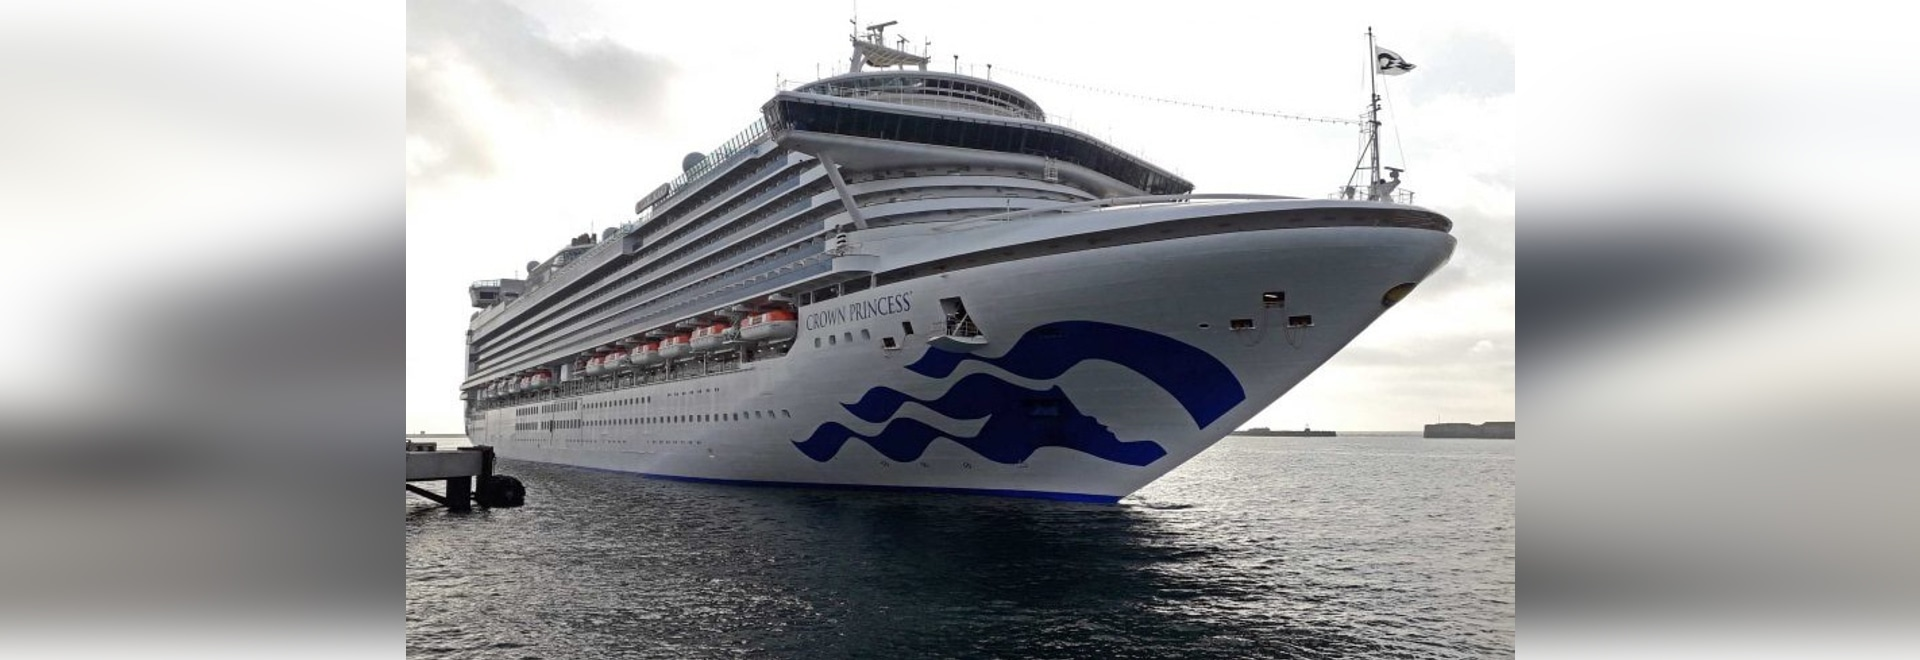 PORTLAND PORT WELCOMES CROWN PRINCESS